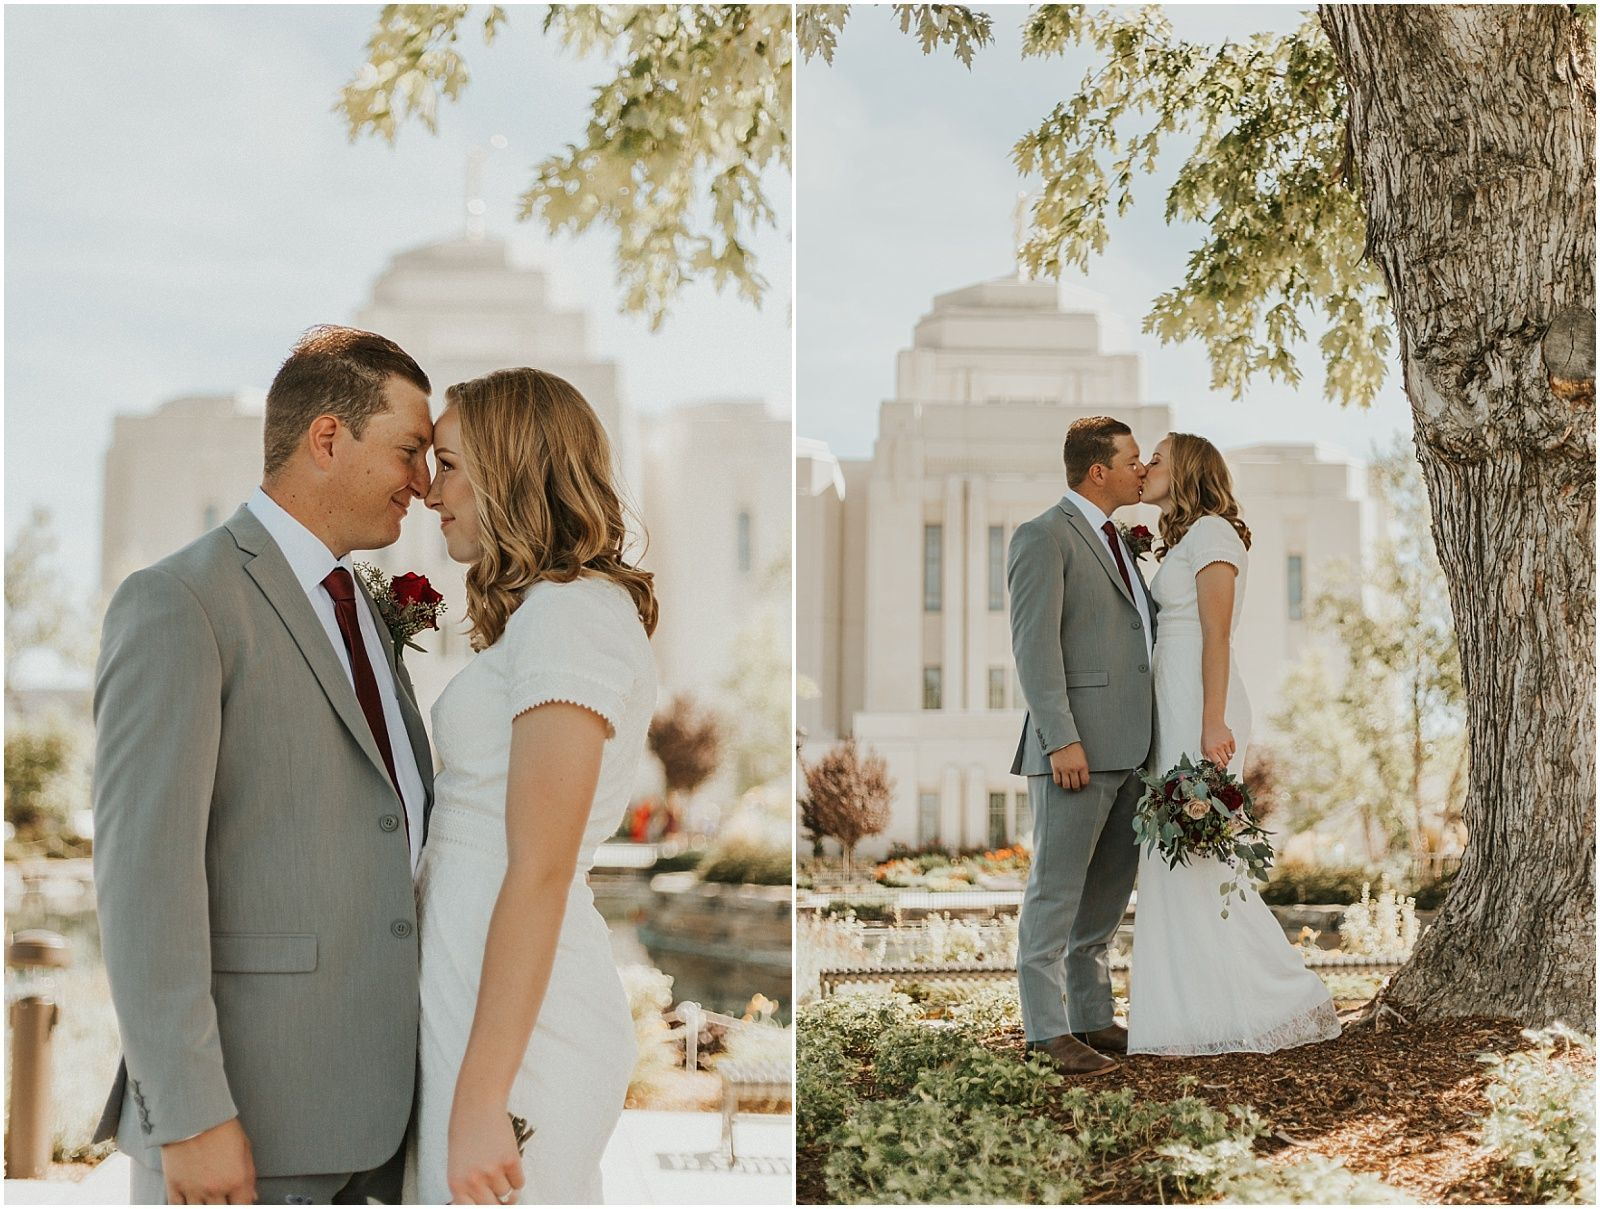 Meridian Lds Temple Wedding In 2020 Lds Temples Wedding Temple Wedding Mormon Wedding